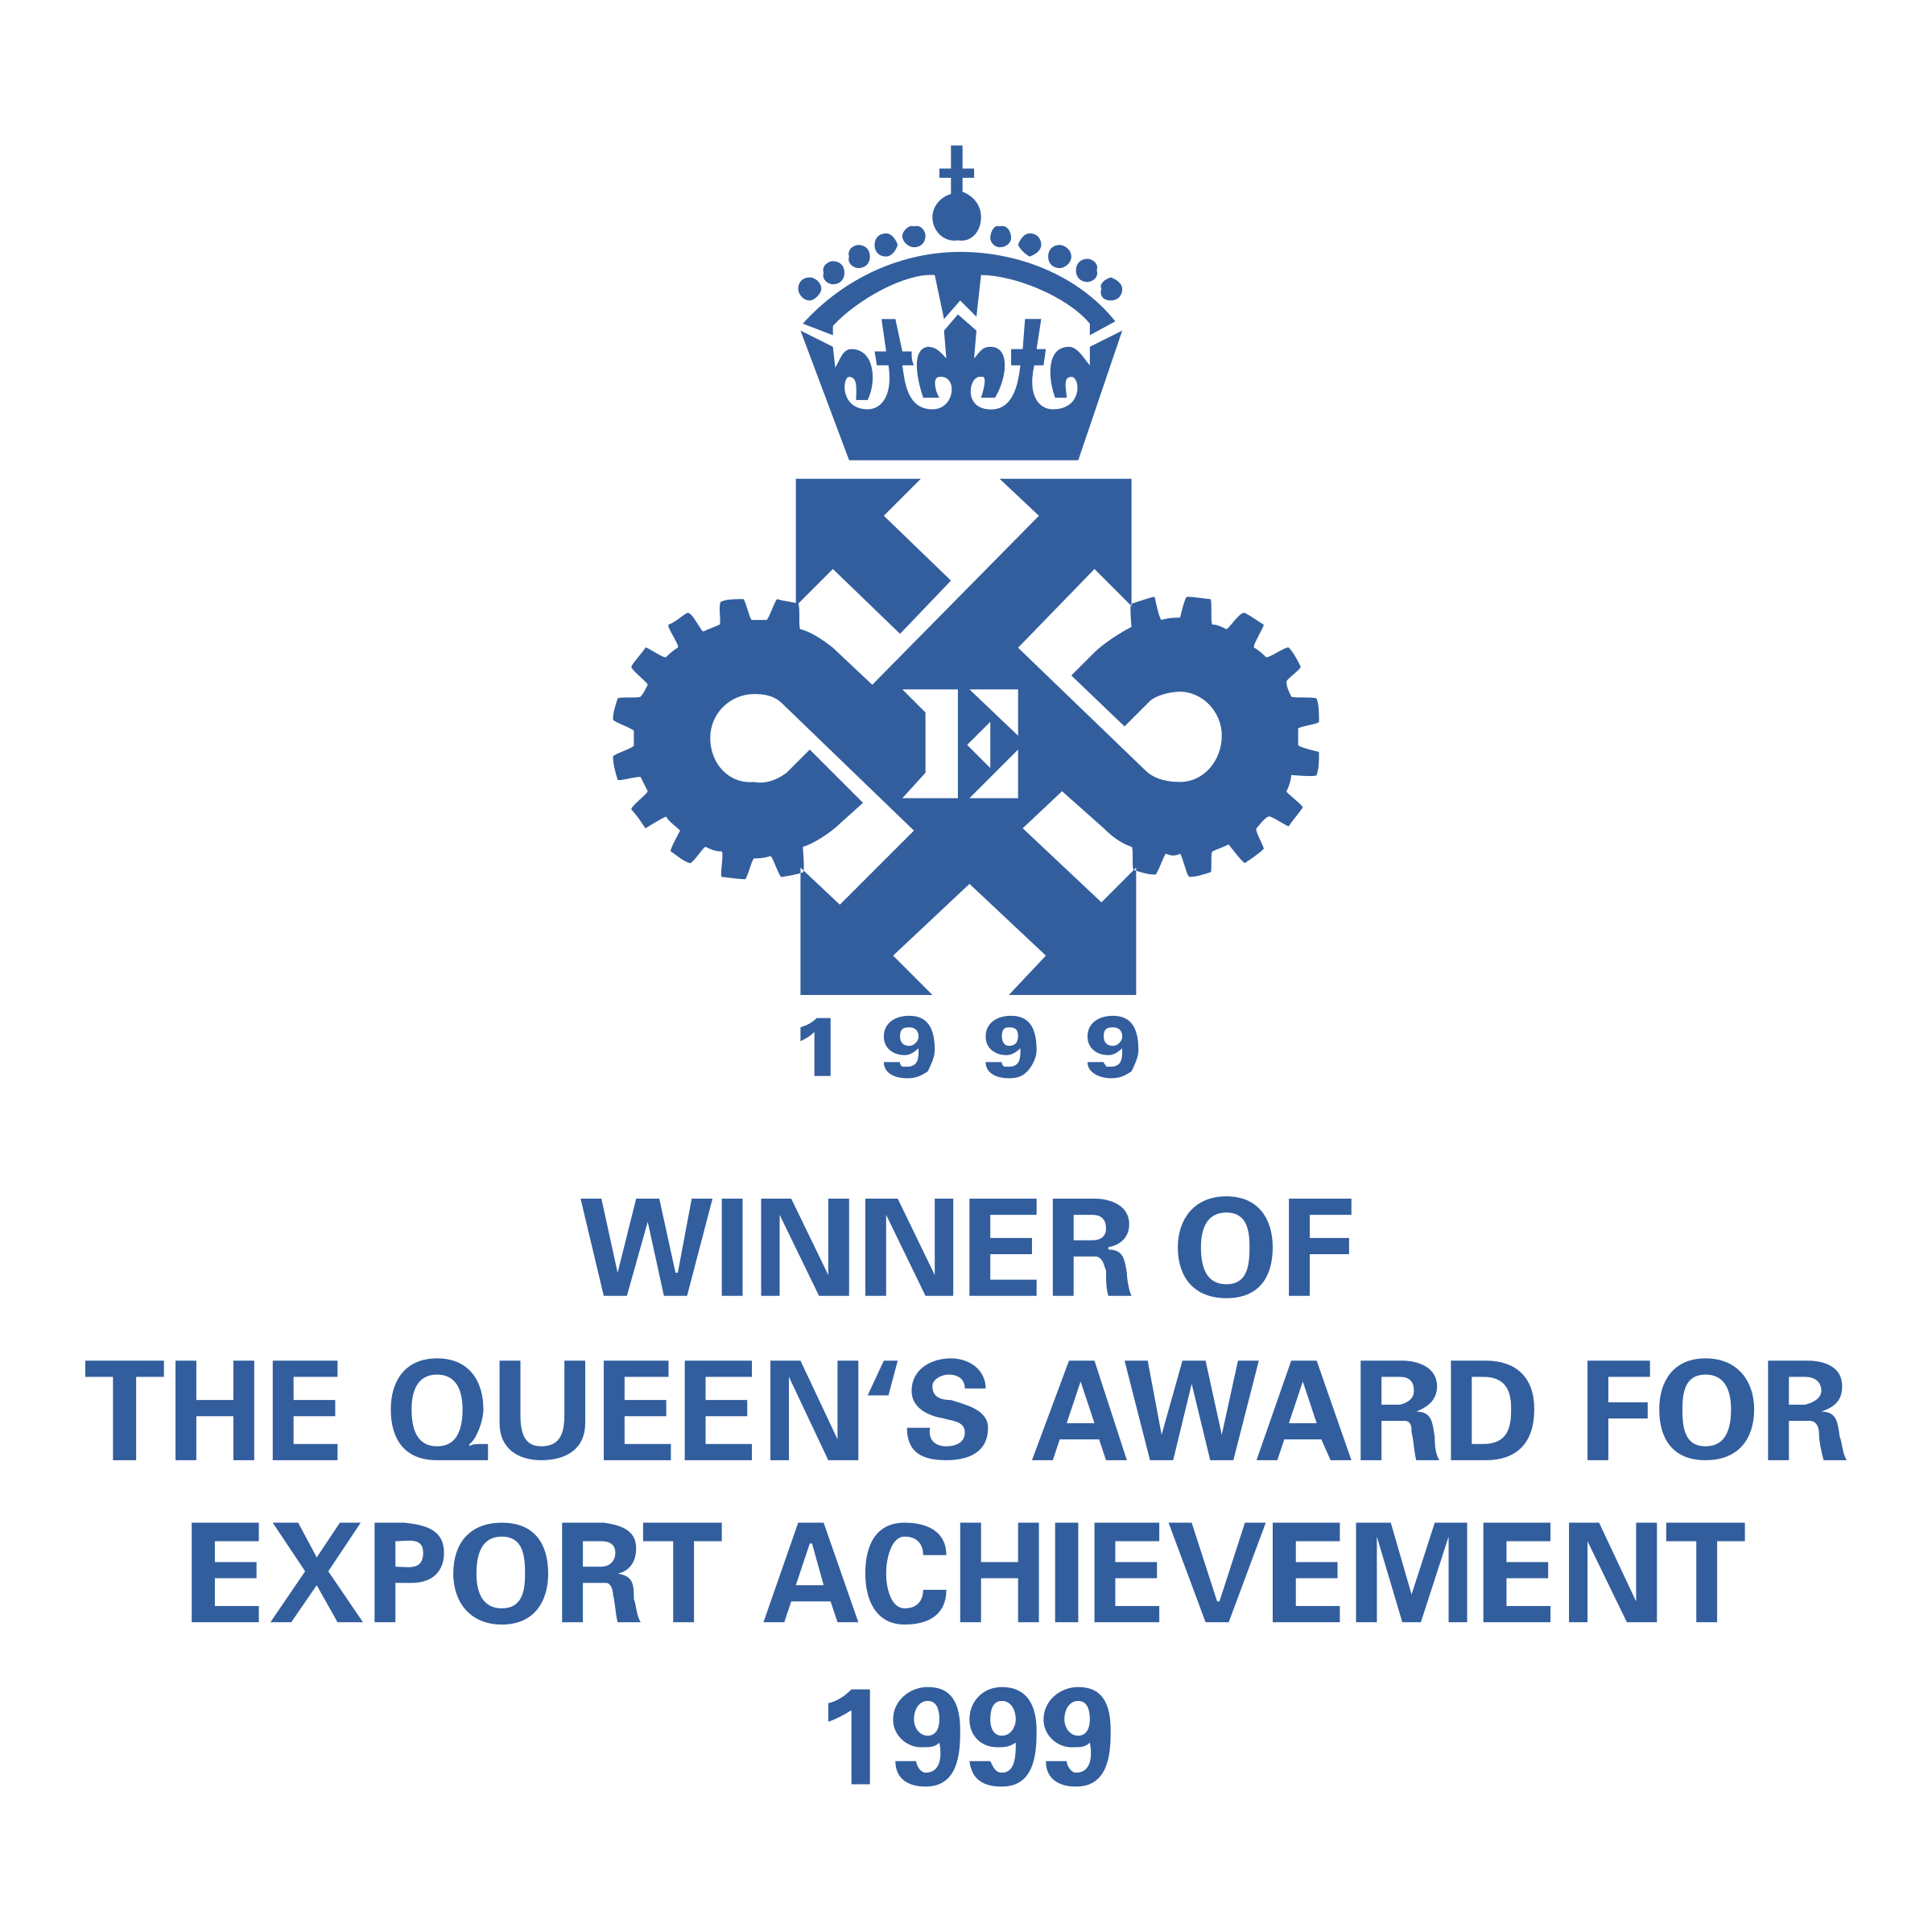 Queen Award For Export Achievement Logo PNG Transparent & SVG Vector.